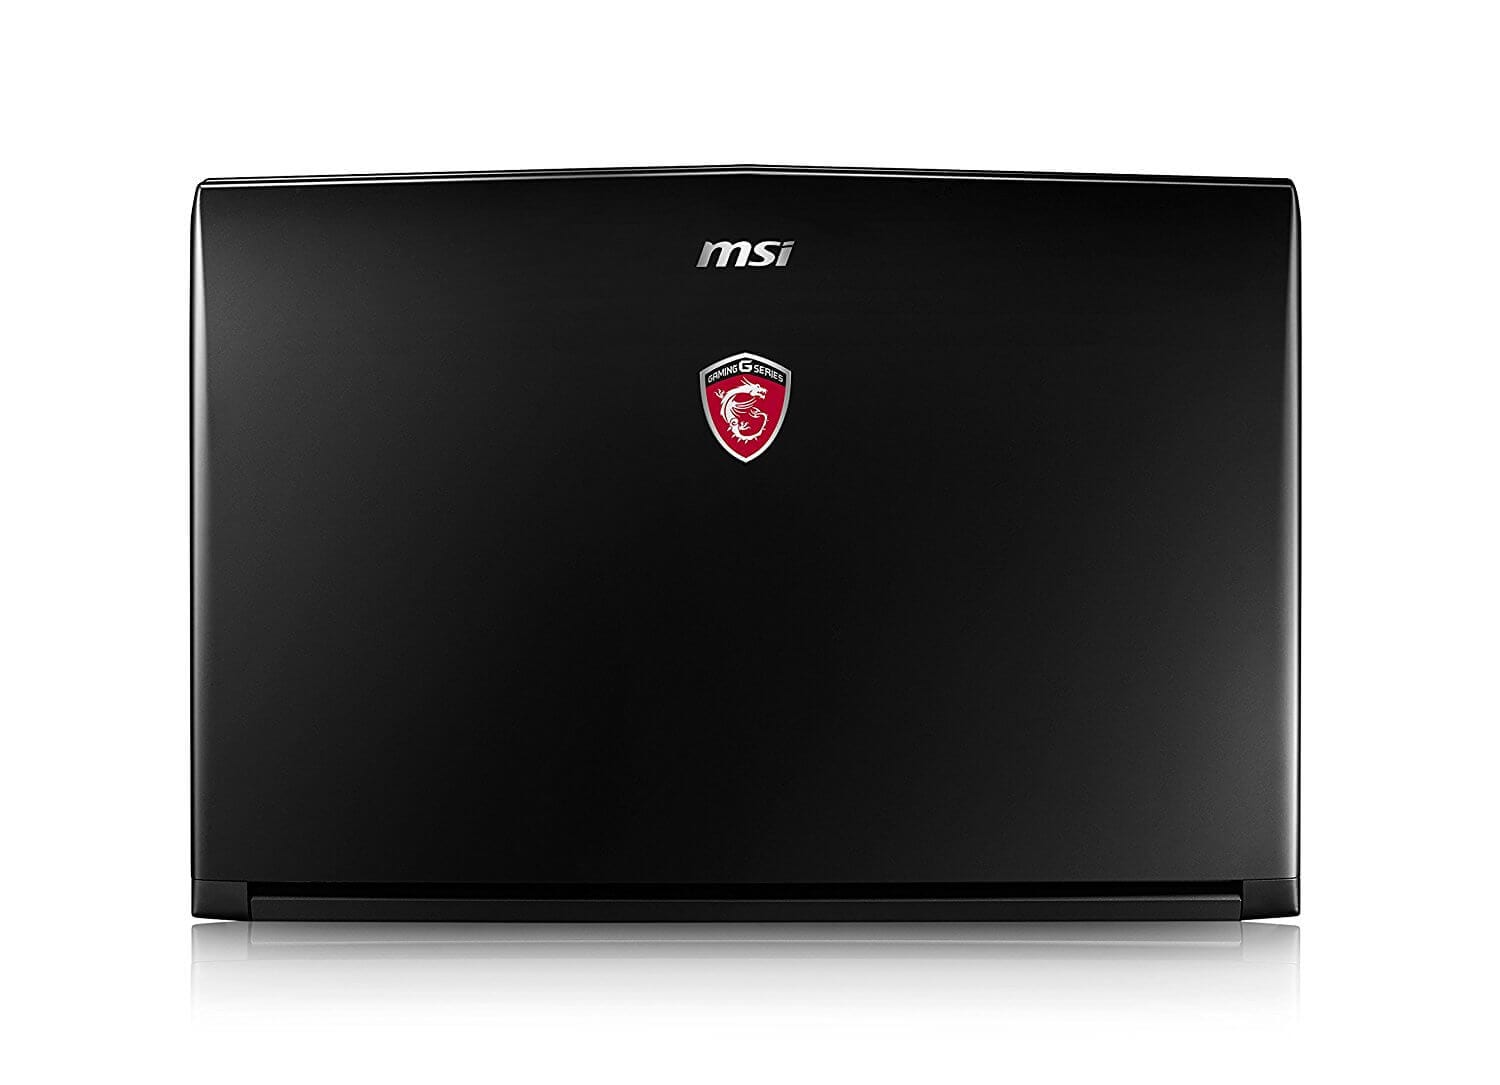 MSI GL62 7QF-1660 Cheap Gaming Laptop under 1000